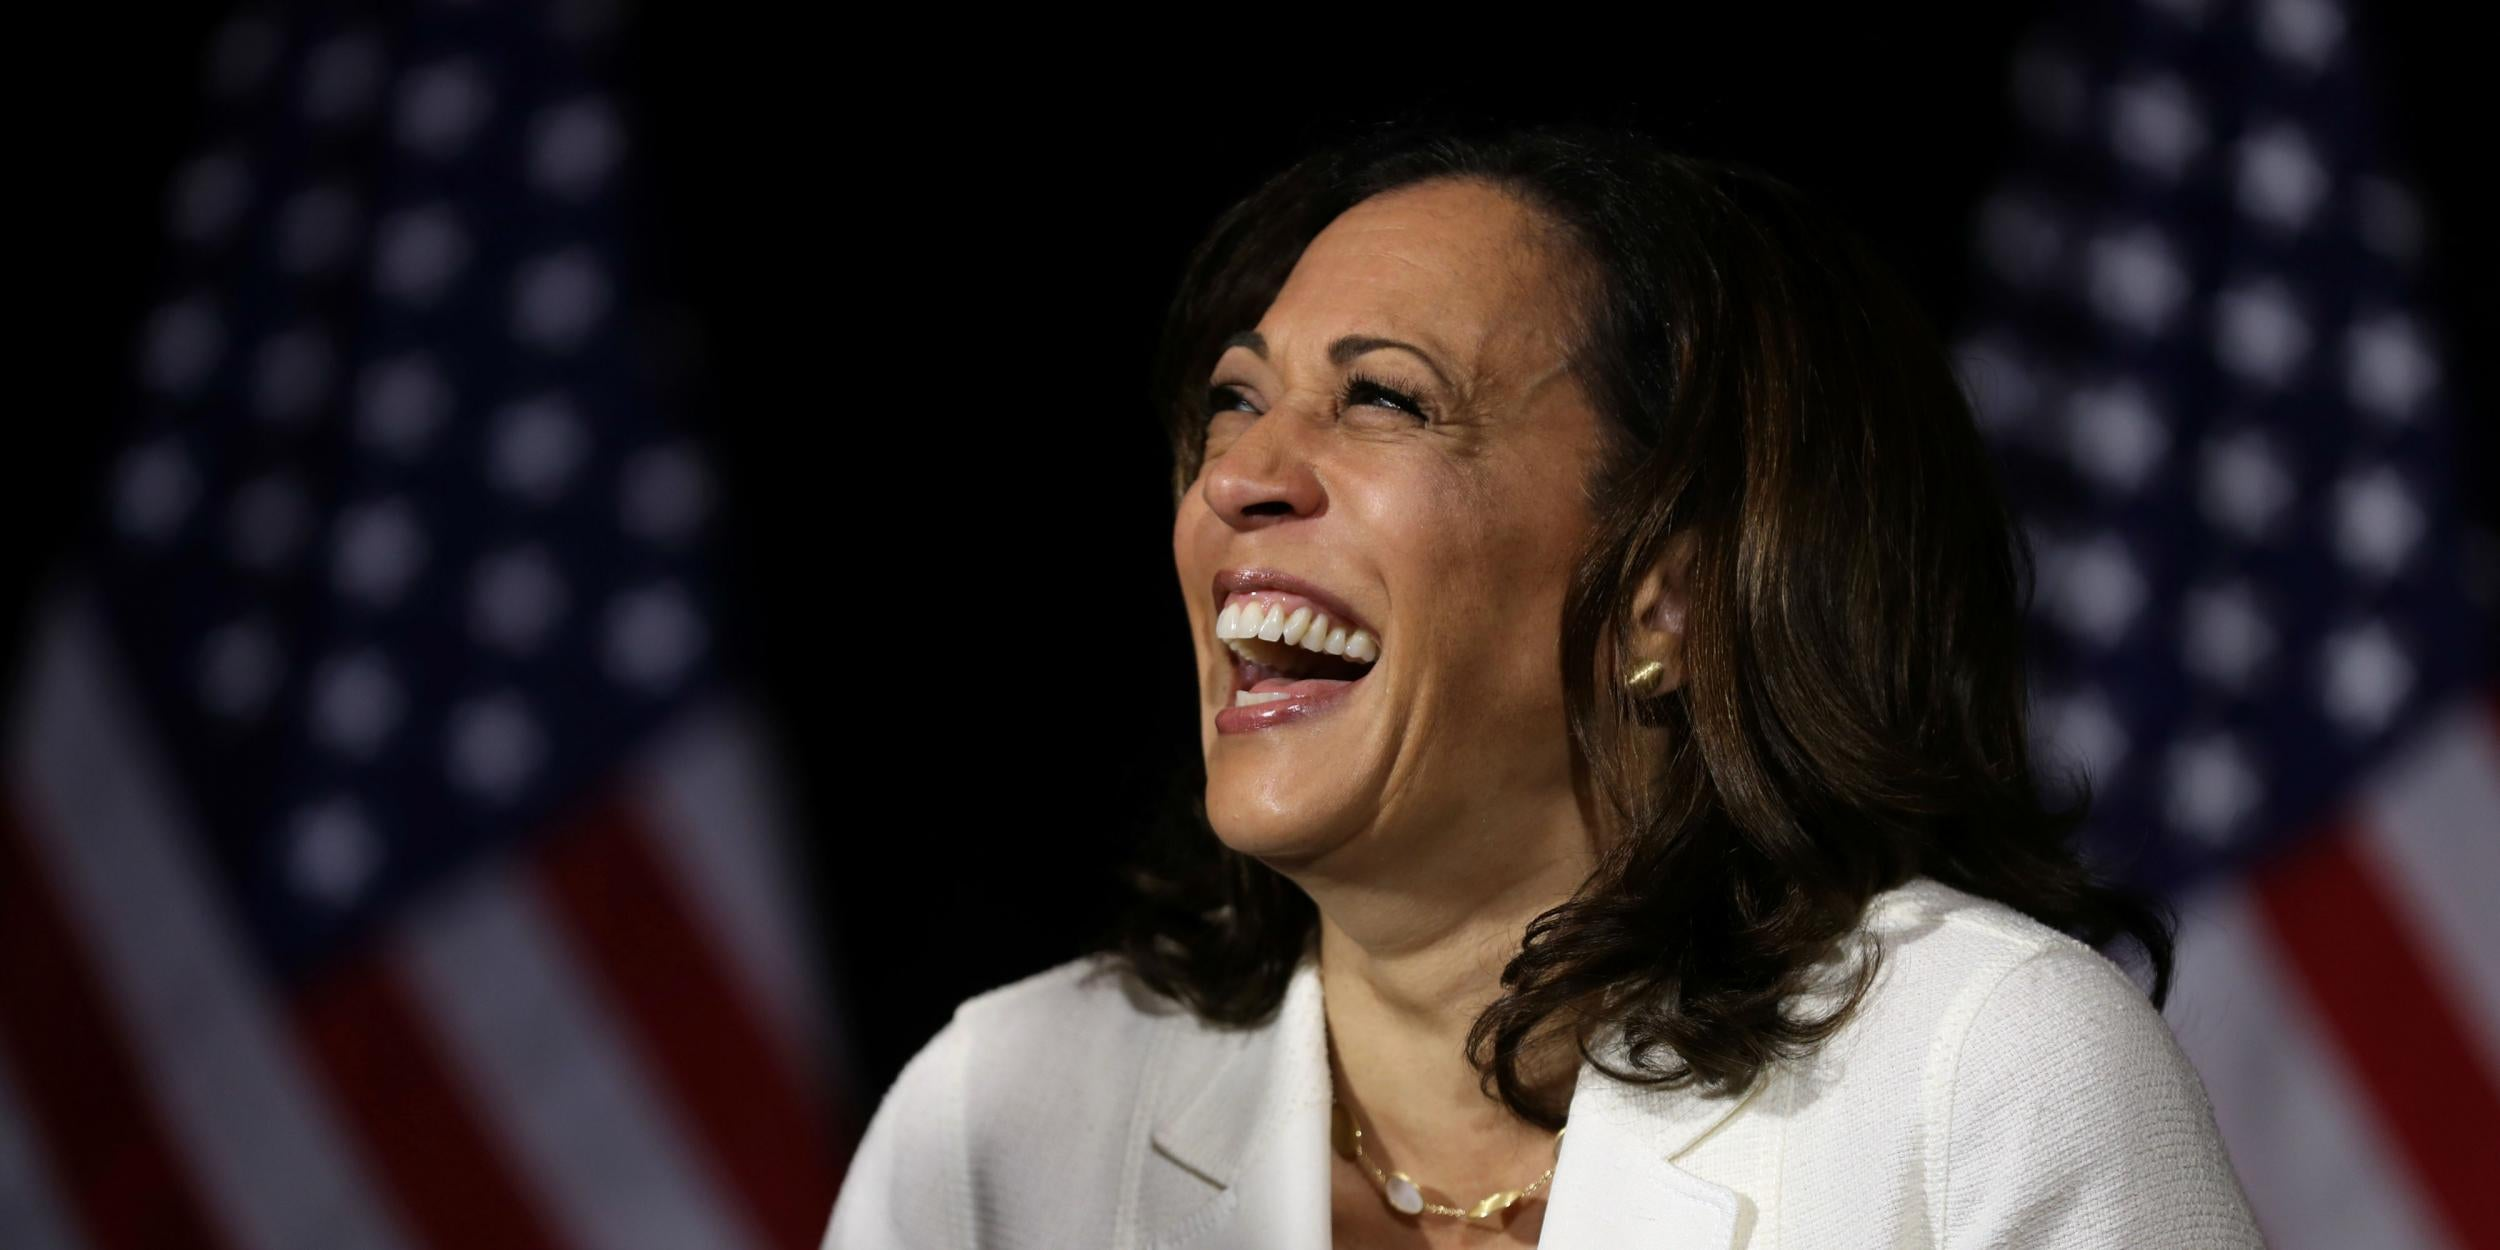 The real story behind the Kamala Harris 'Wave meme' is utterly heart…